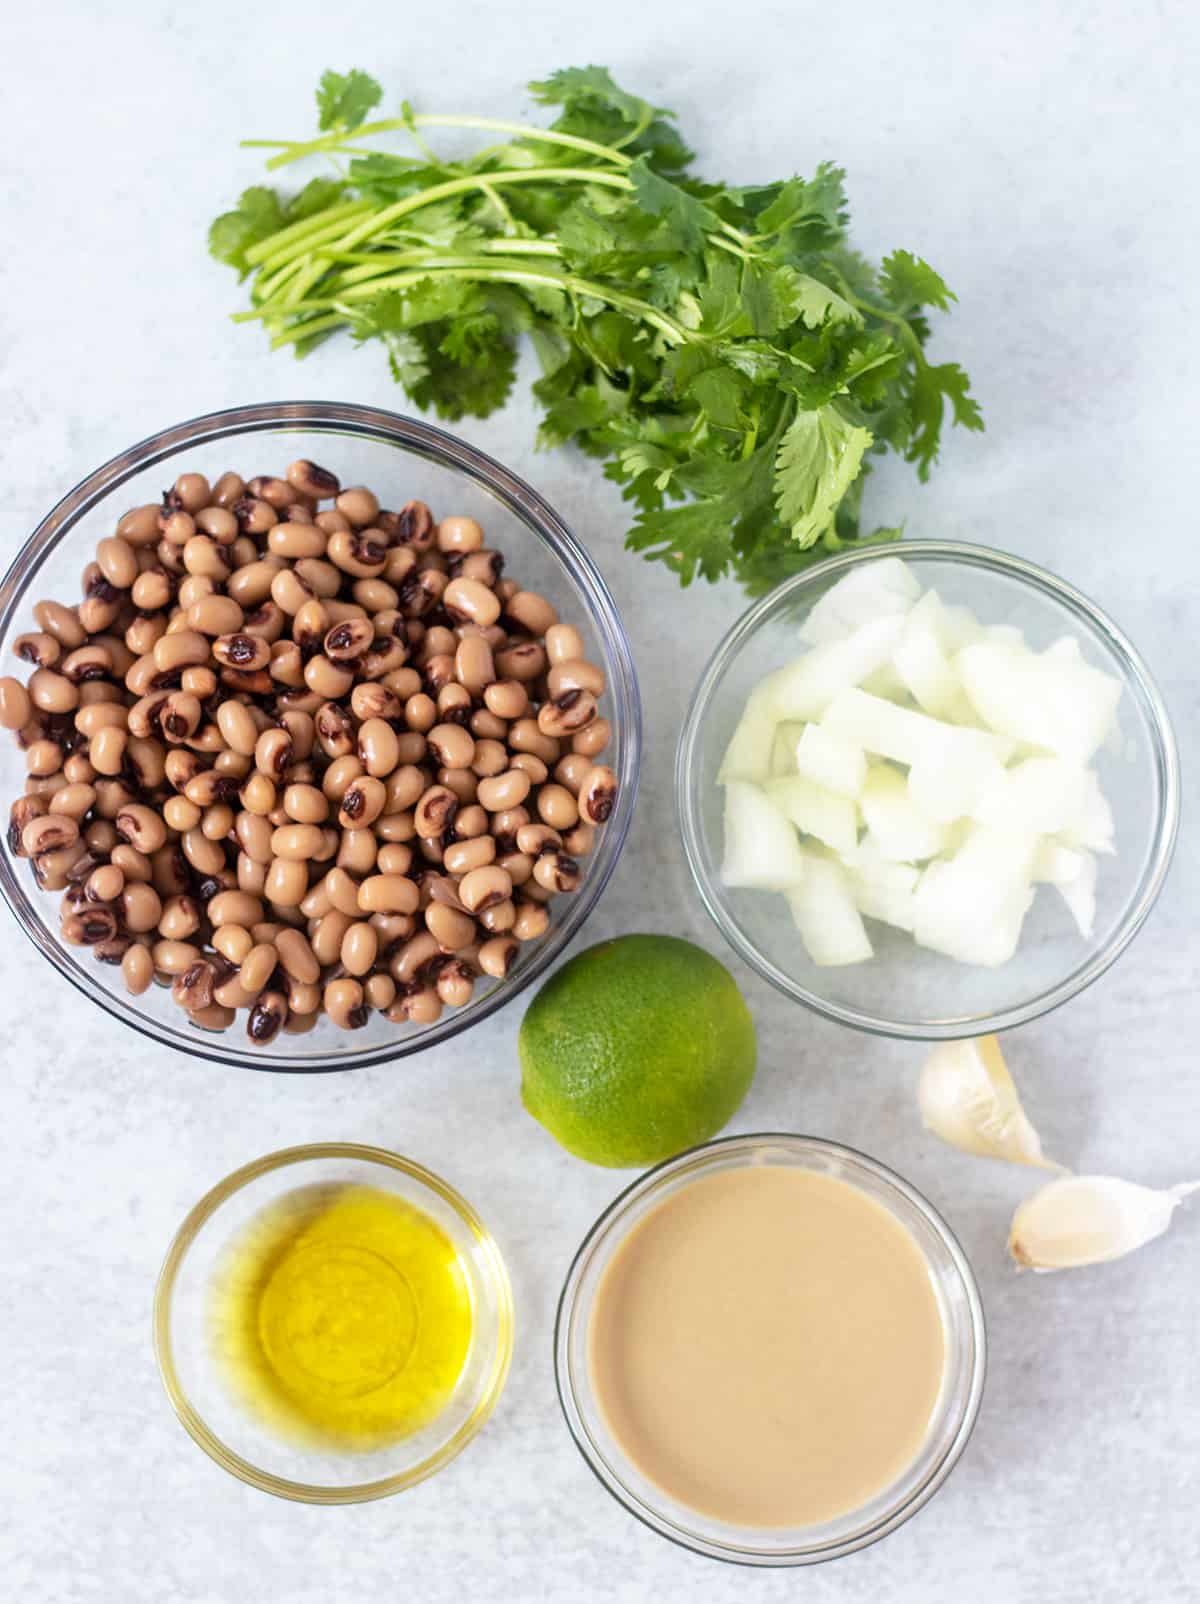 black-eyed peas, onion, garlic, cilantro, lime, olive oil, tahini